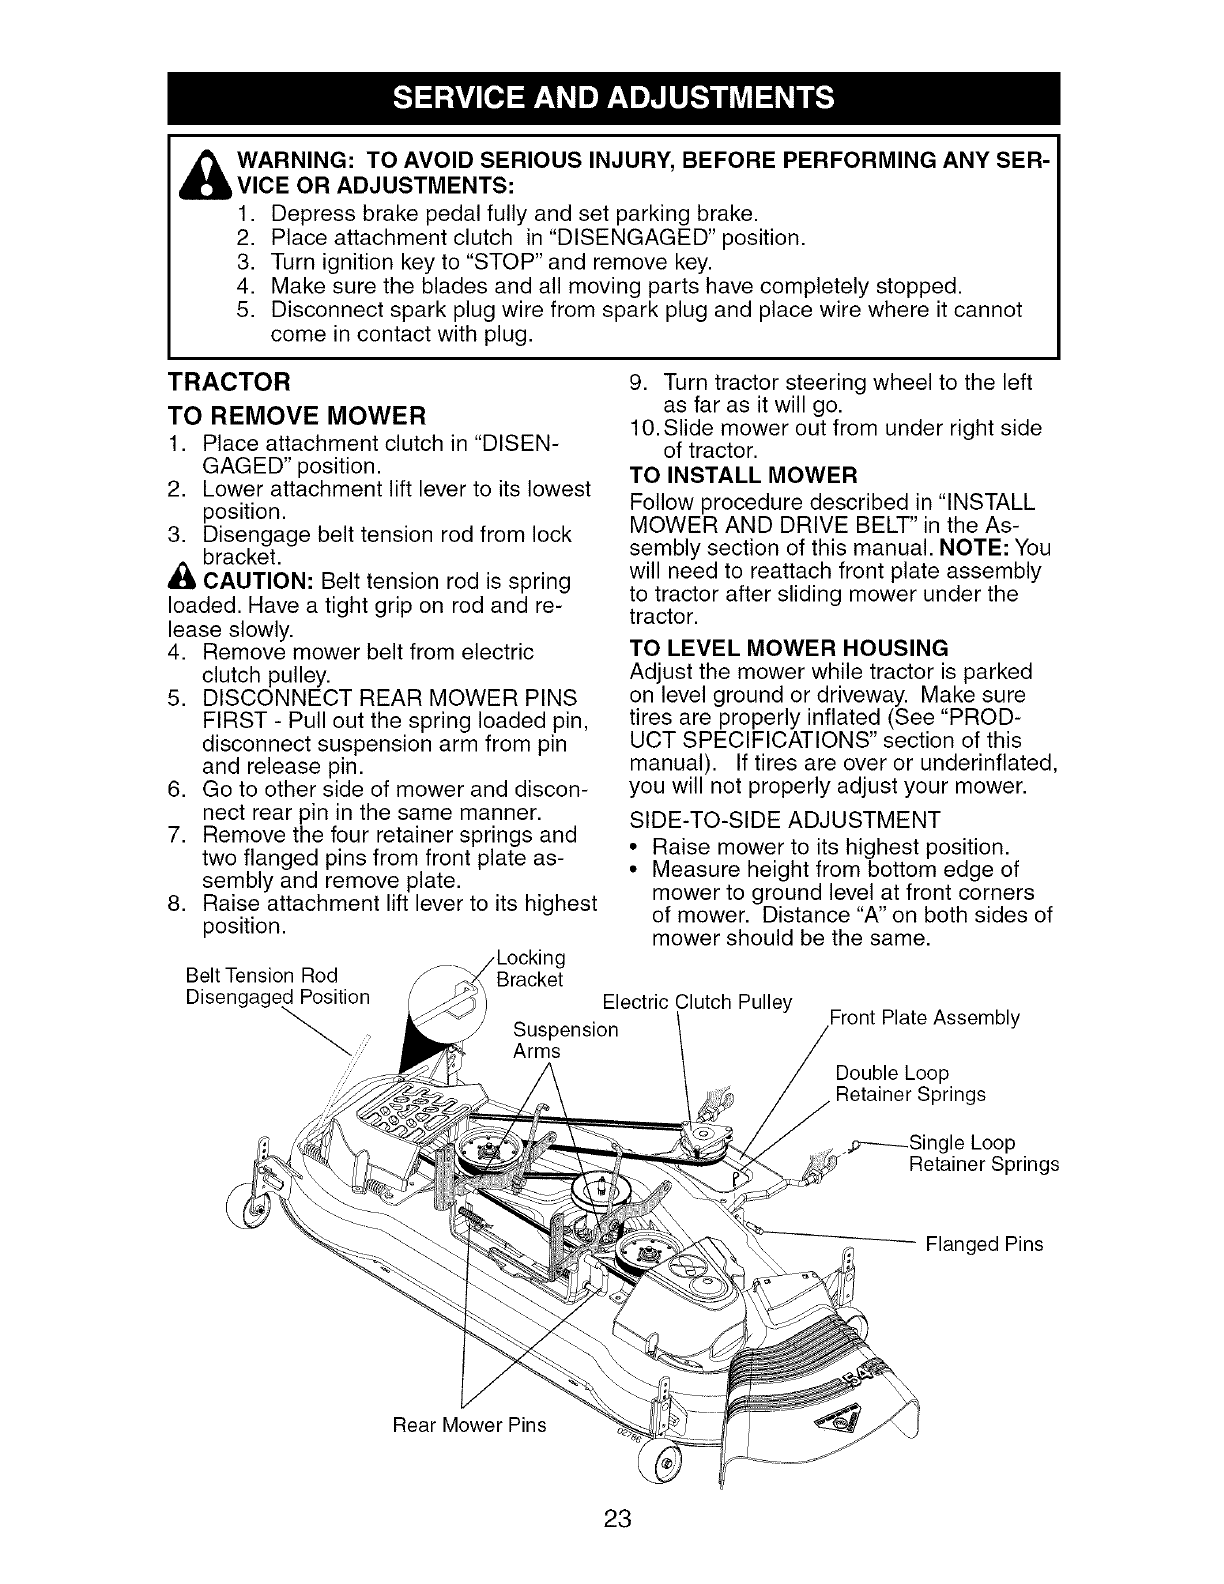 Craftsman 917276380 User Manual Tractor Manuals And Guides L0503415 Ignition Switch Wiring Diagram 5 Prongs Warning To Avoid Serious Injury Before Performing Any Ser